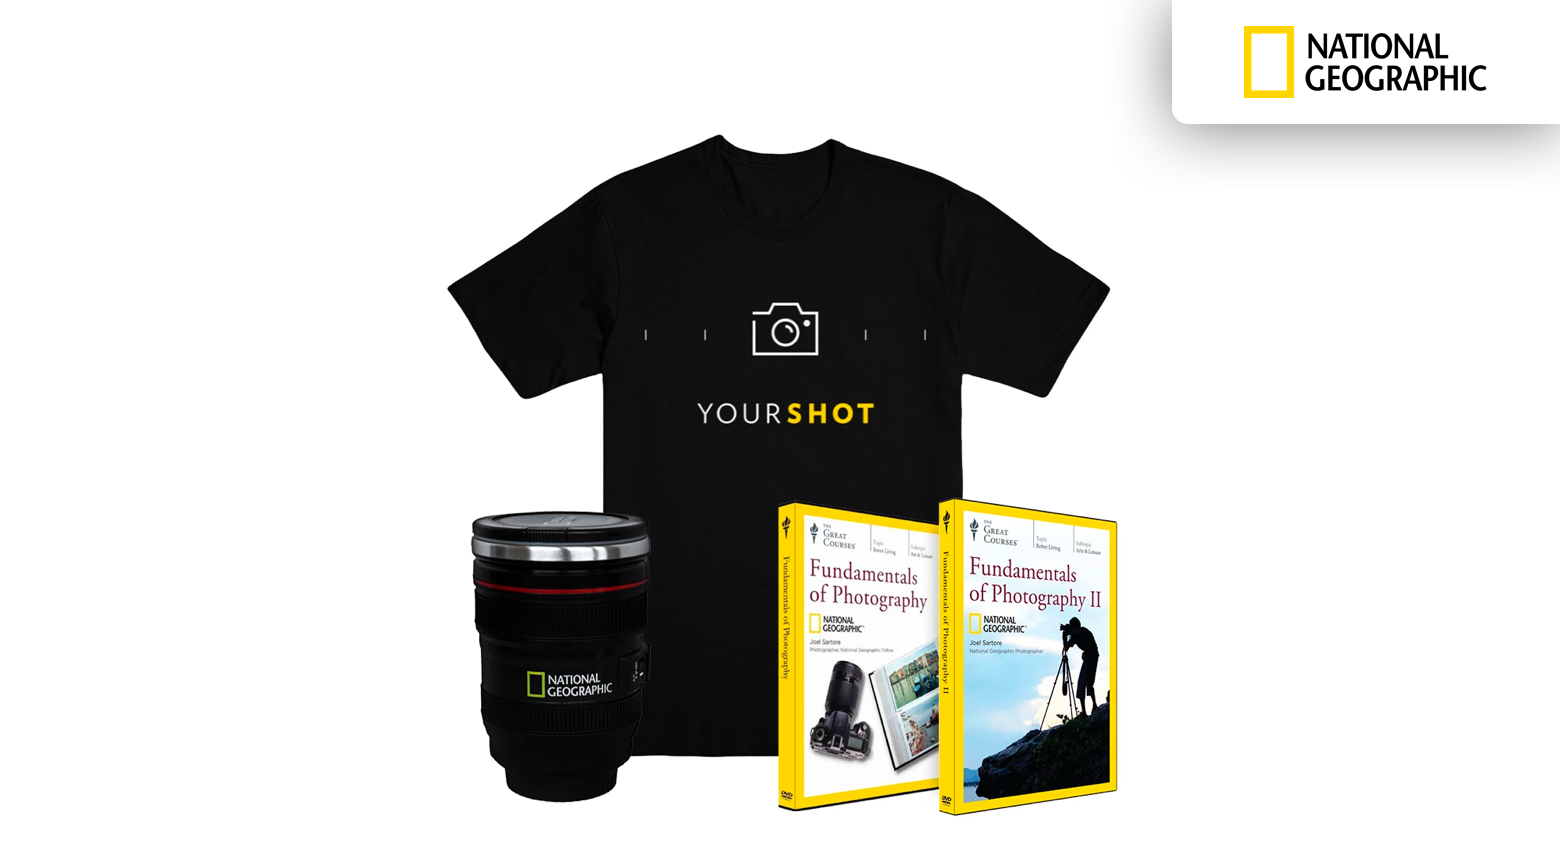 A branded mug, a t-shirt, and two photography courses